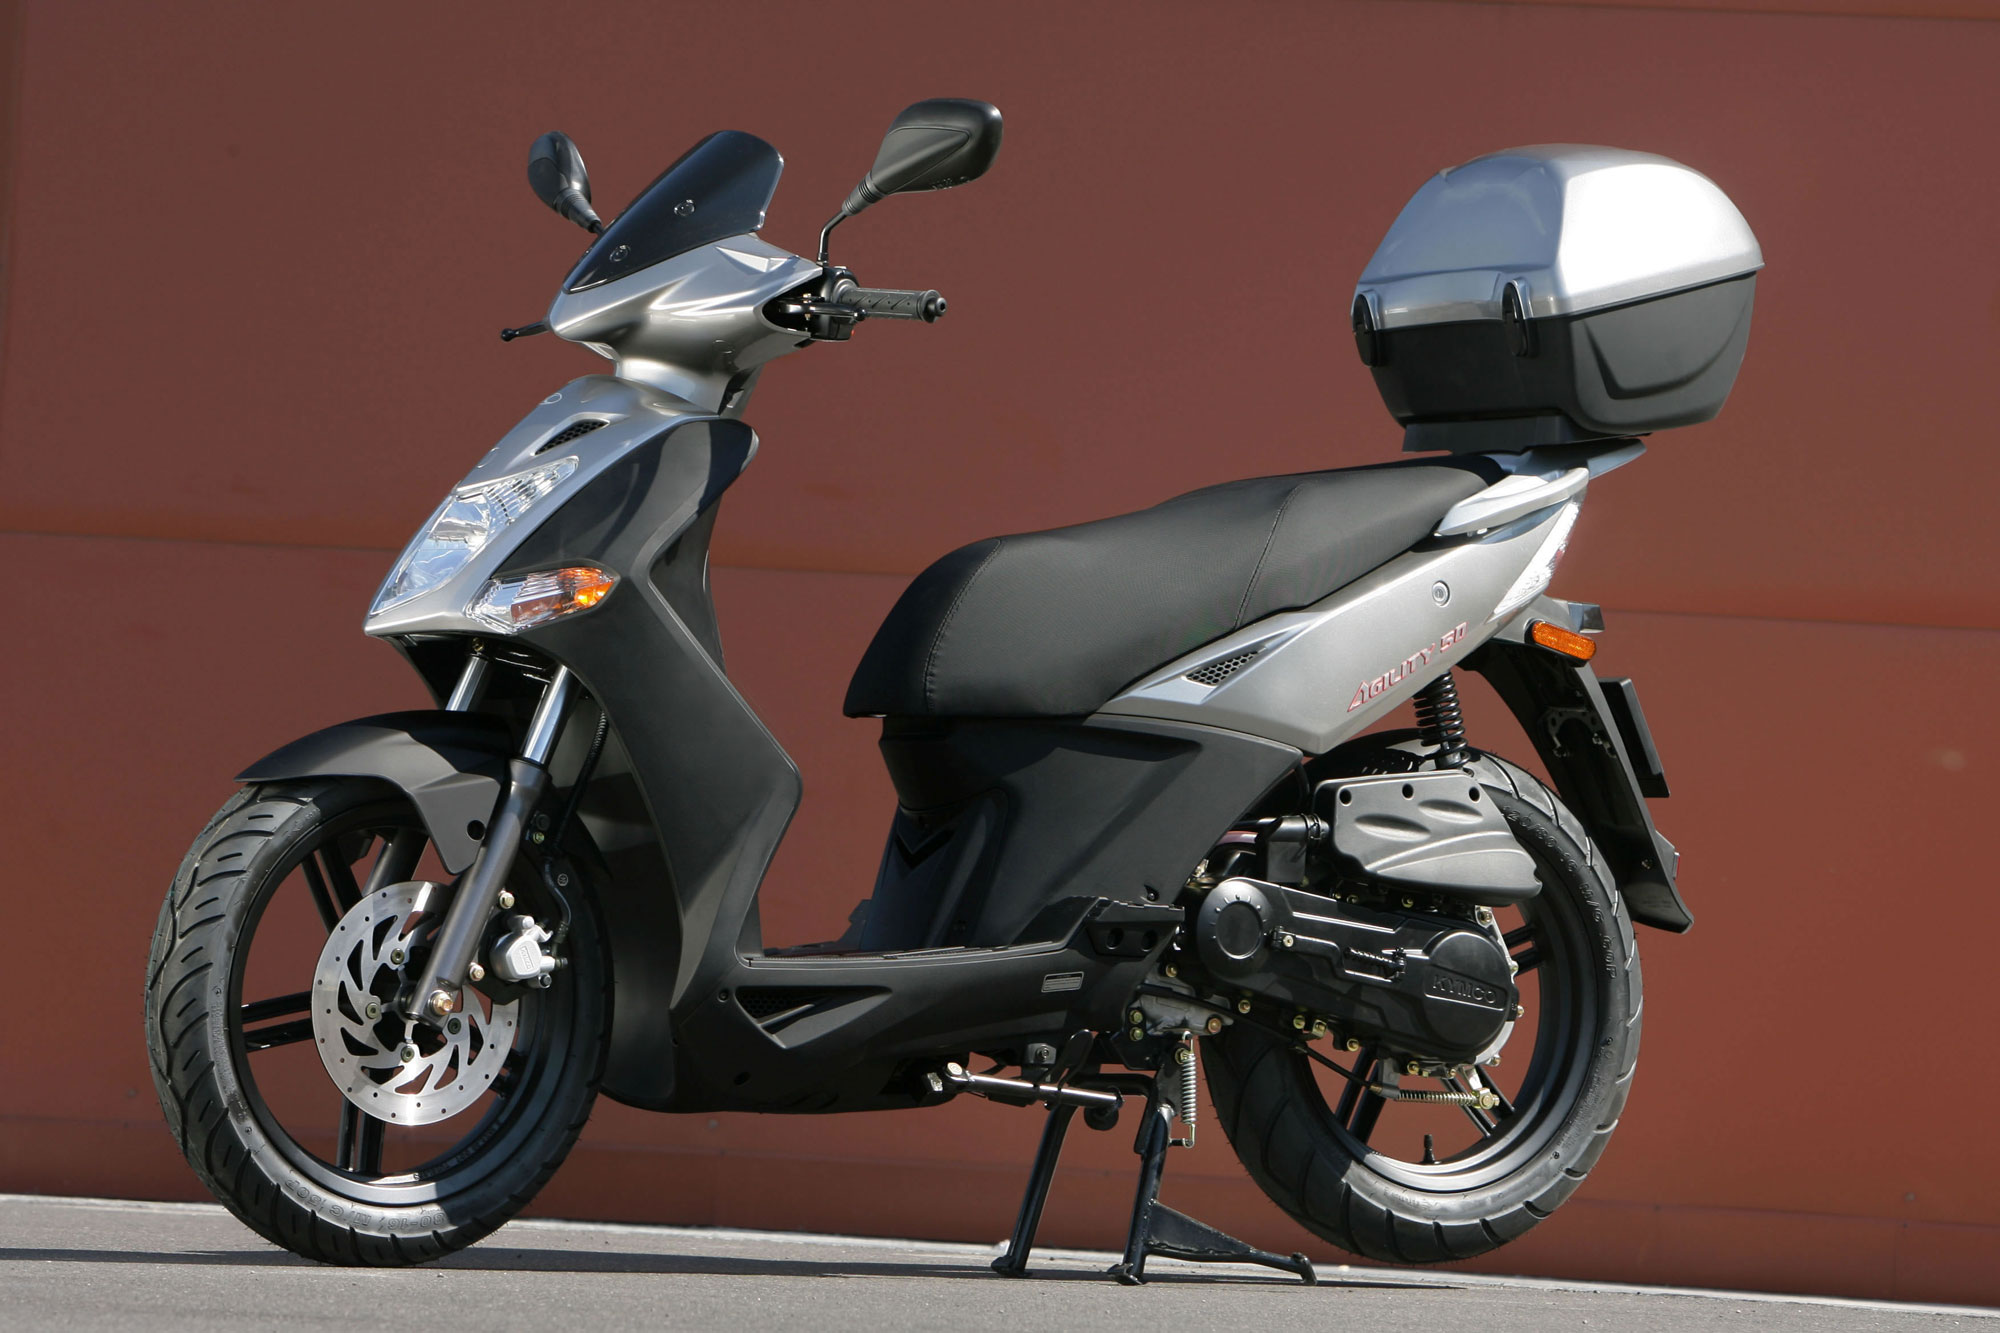 Kymco Agility City 125 images #101817